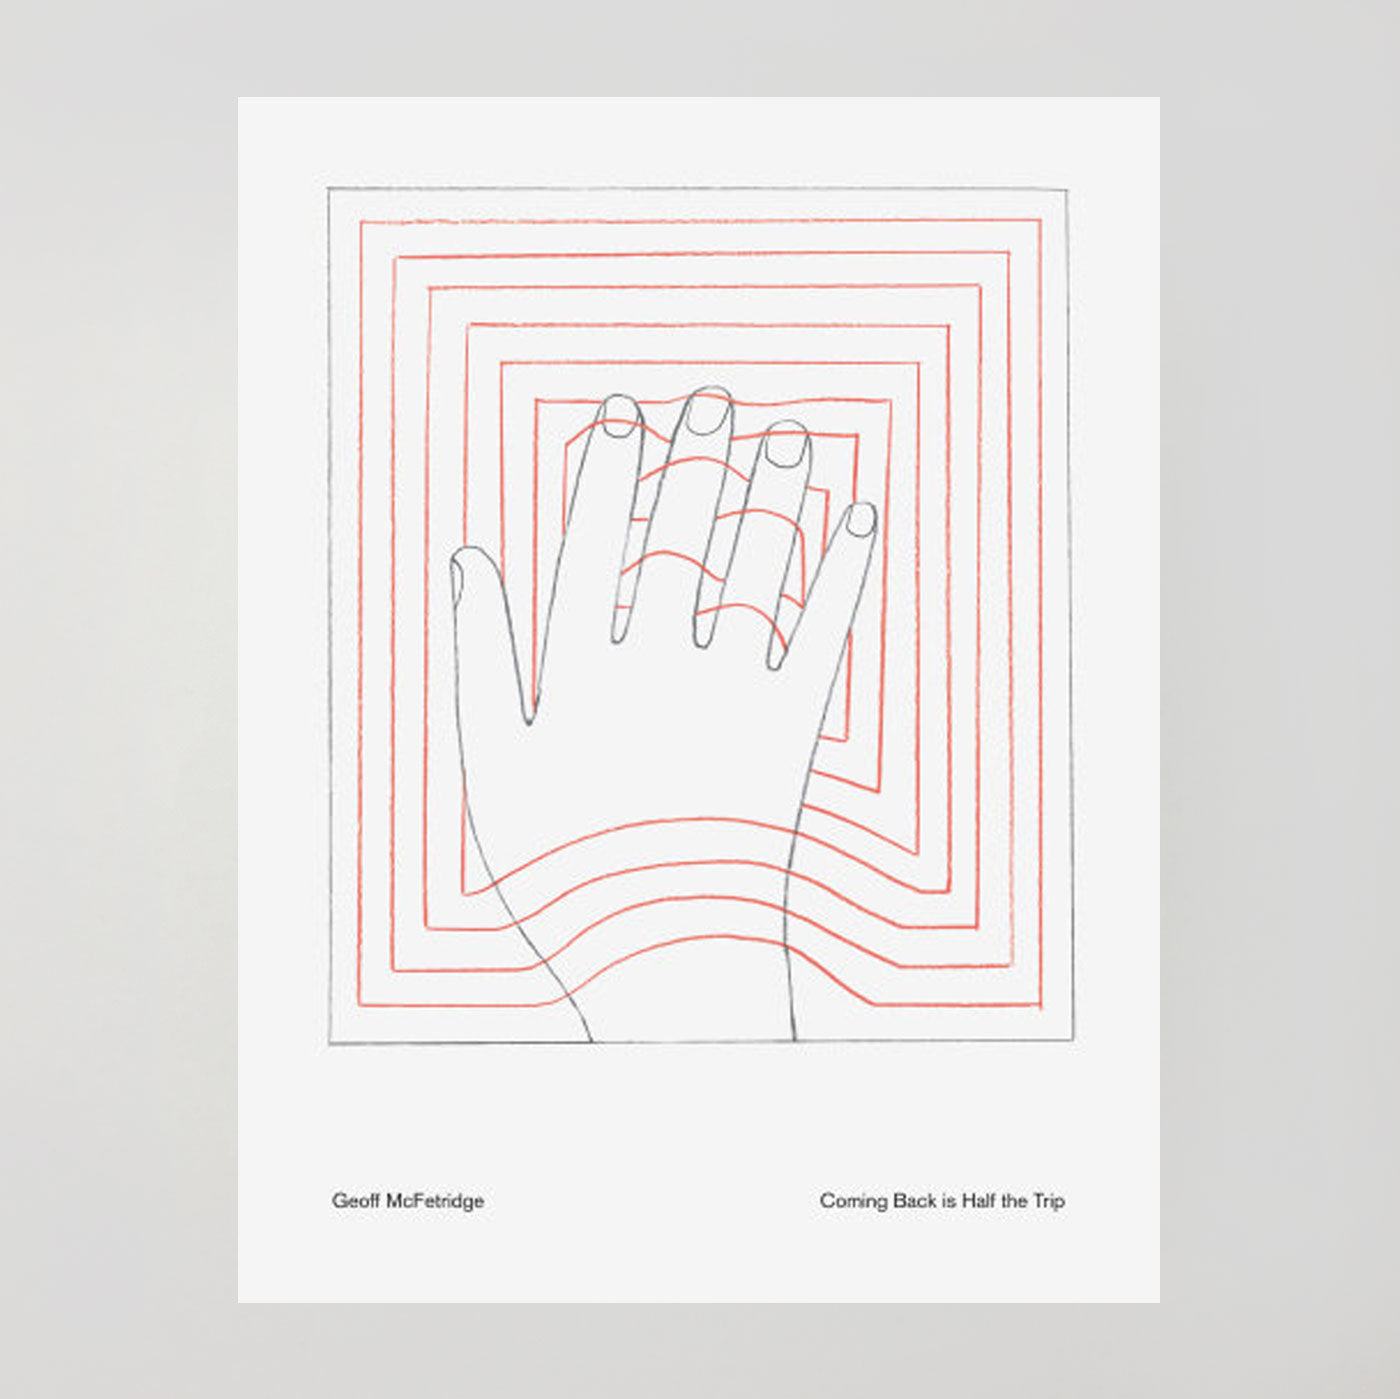 Coming Back is Half The Trip - Geoff McFetridge